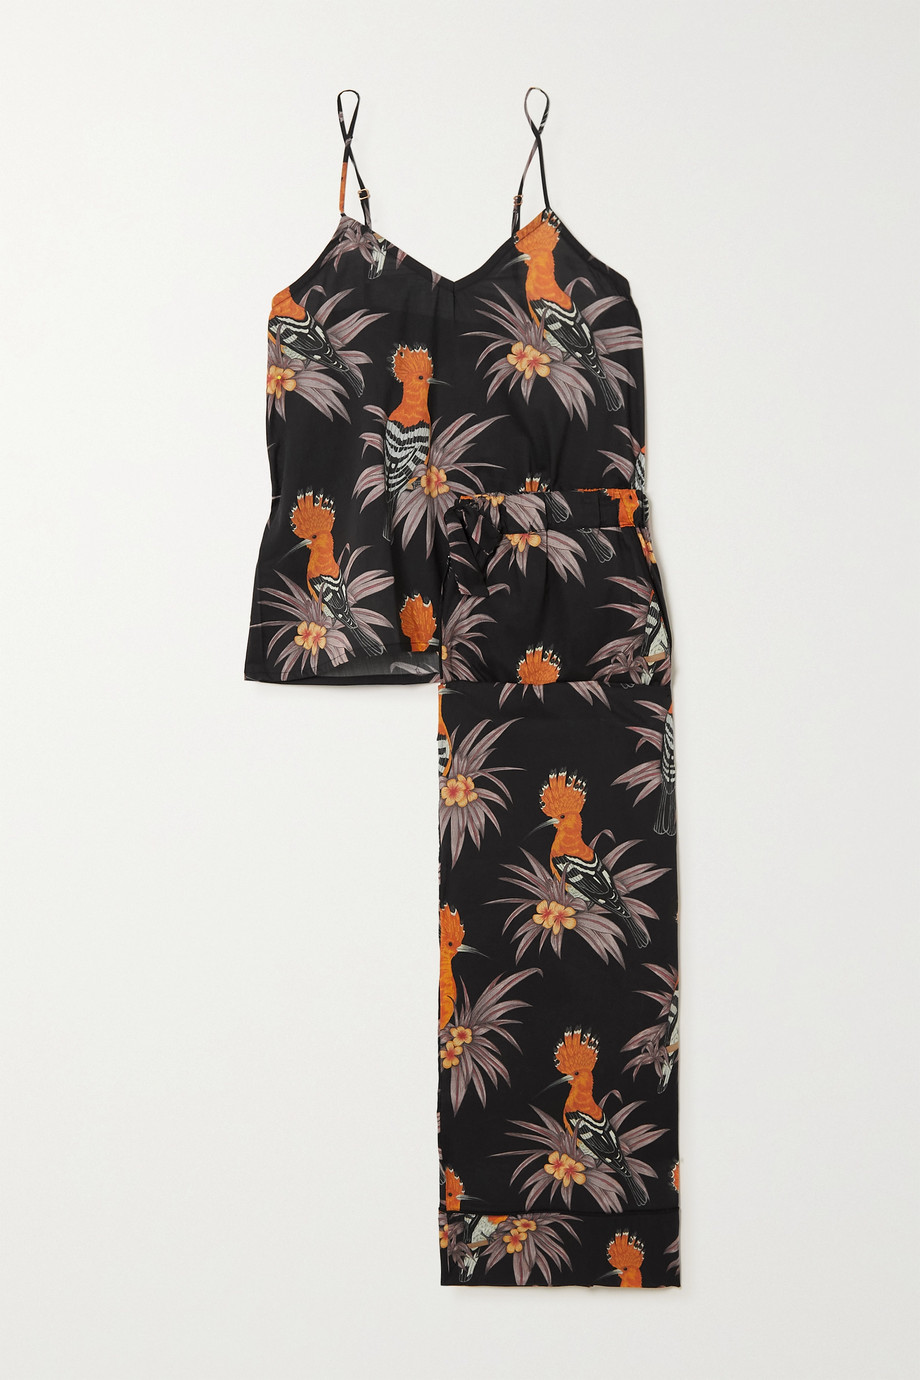 Desmond & Dempsey Cropped printed cotton-voile pajama set